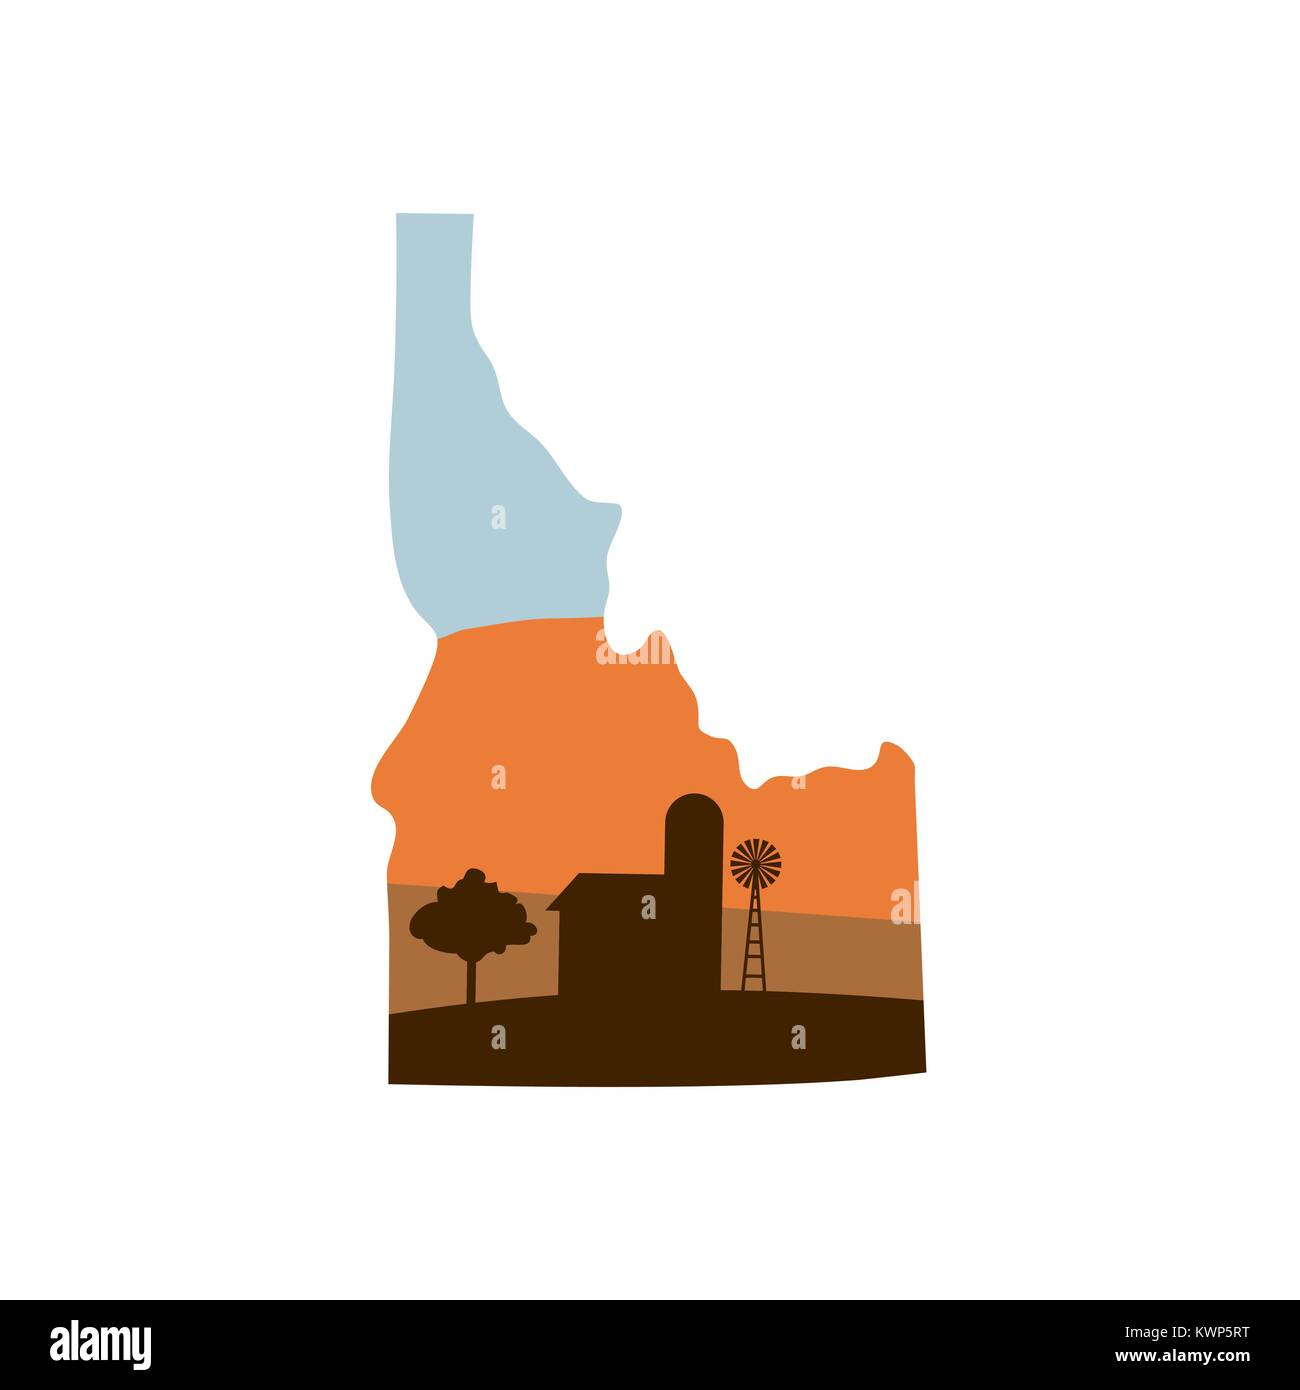 Idaho State Shape w Farm at Sunset with Windmill, Barn, and a Tree - Stock Vector